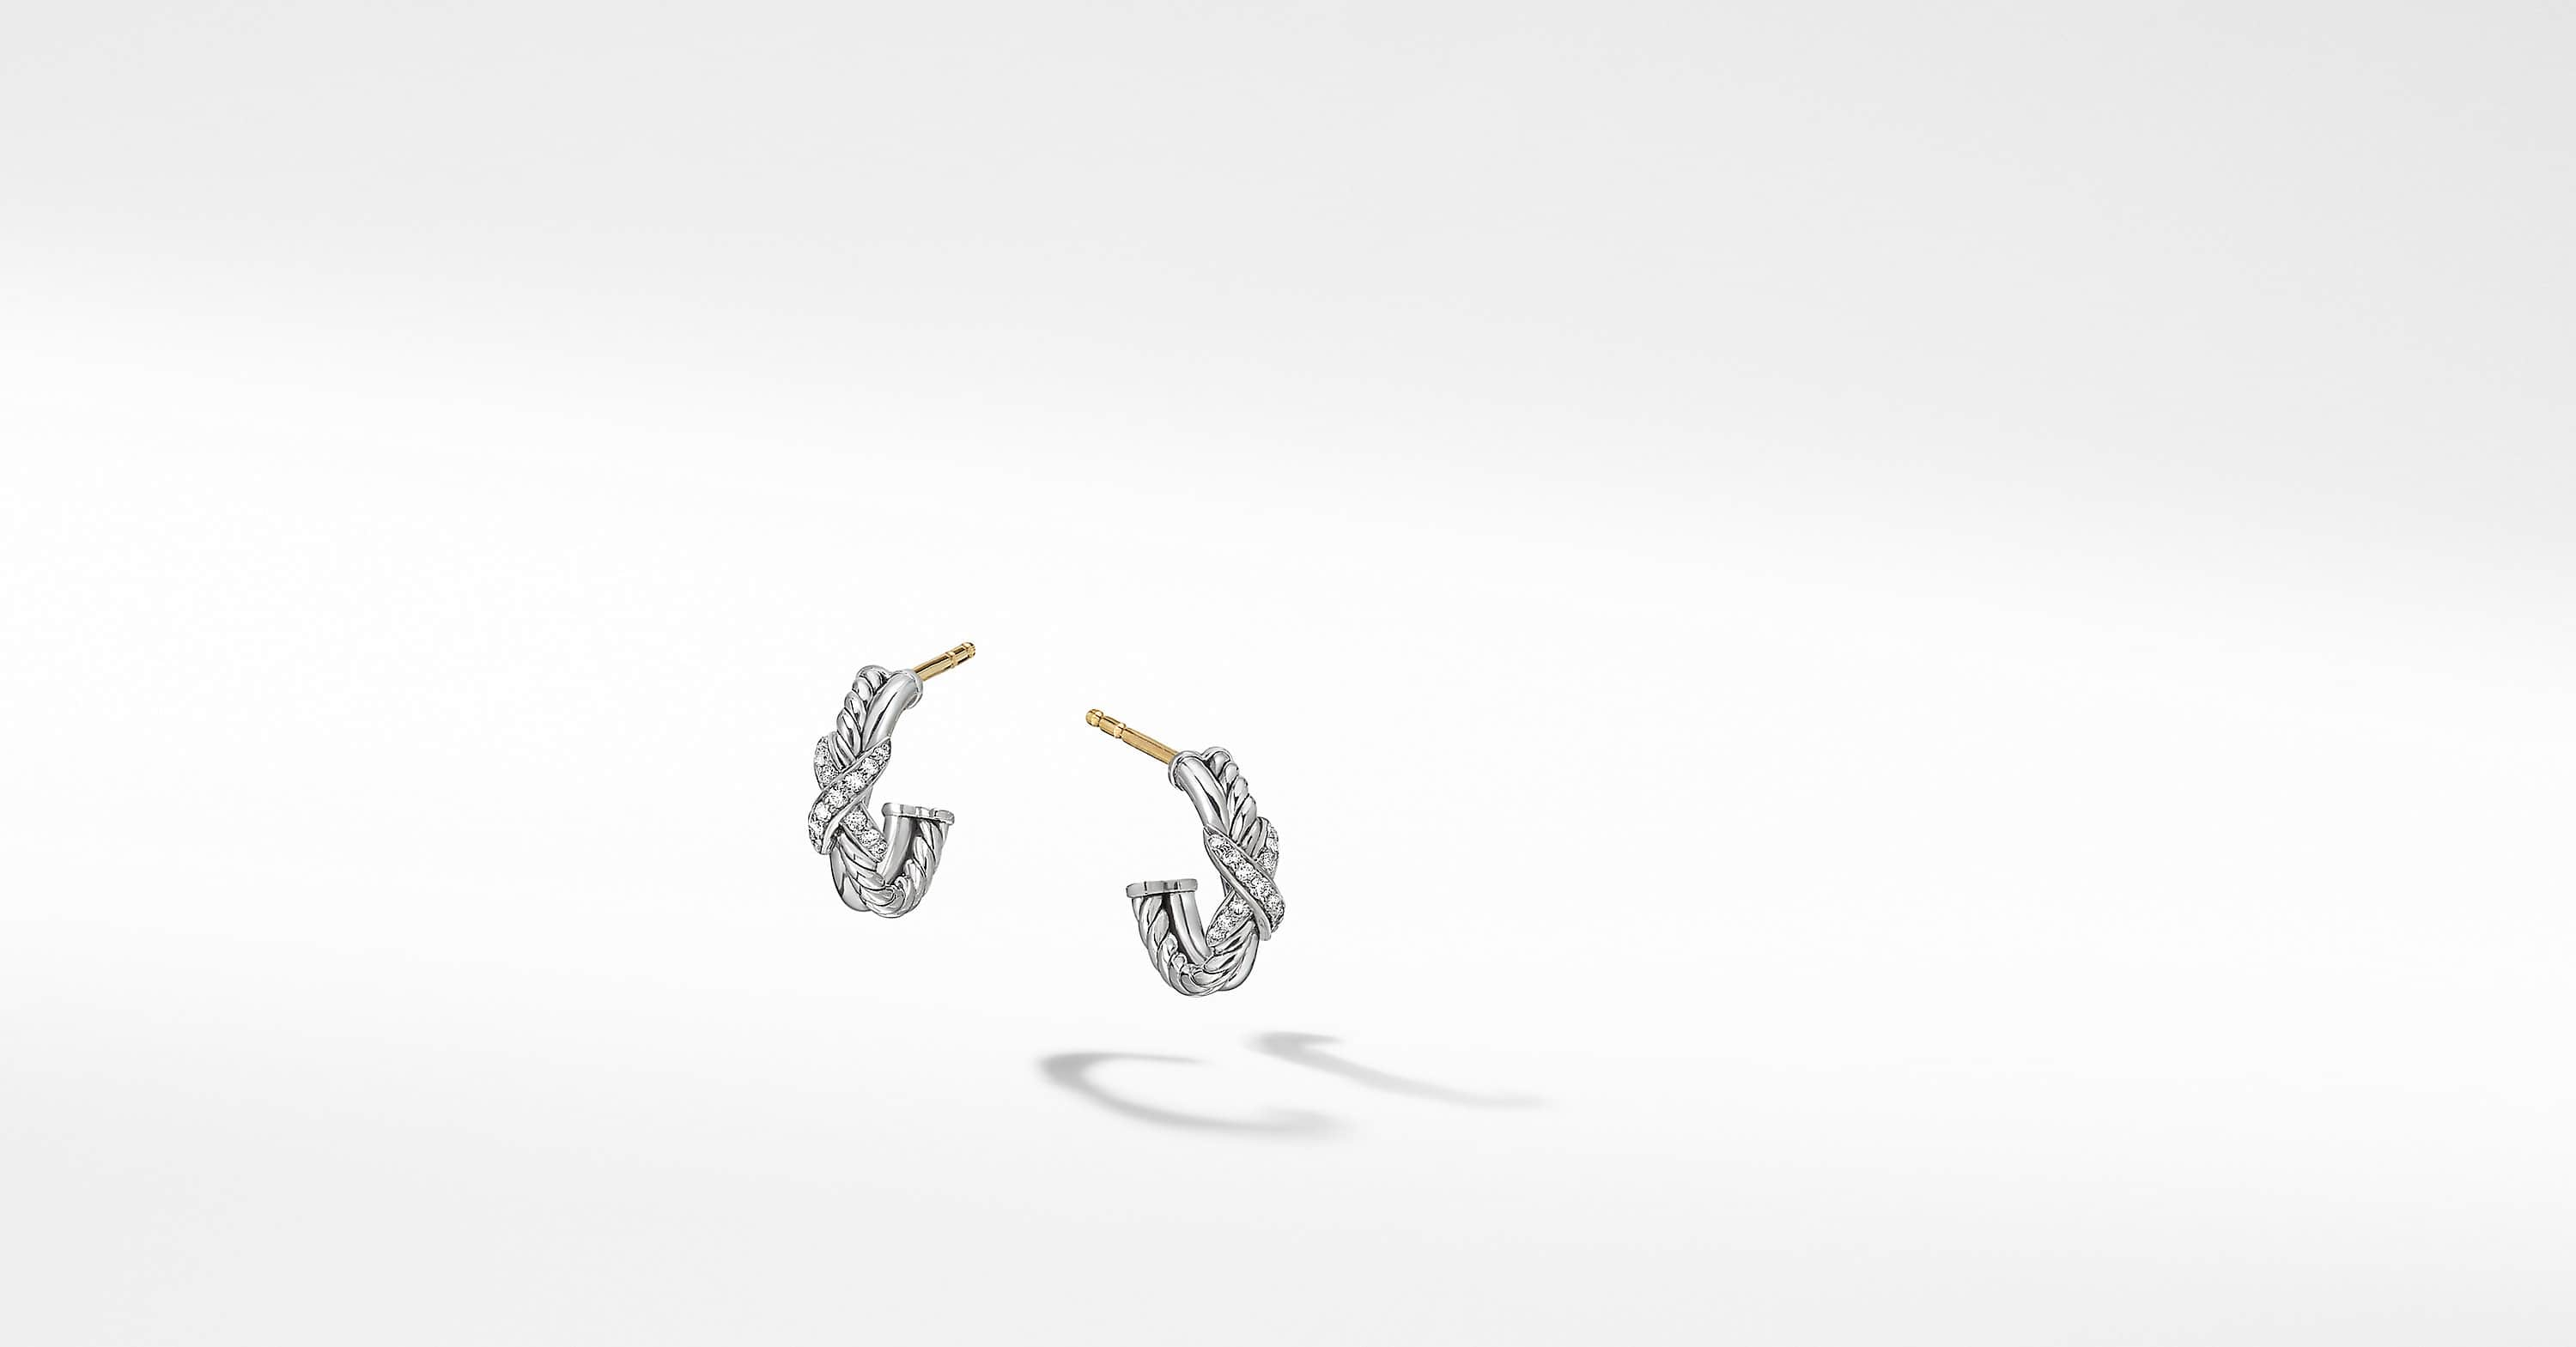 Petite X Mini Hoop Earrings with Diamonds, 12.6mm